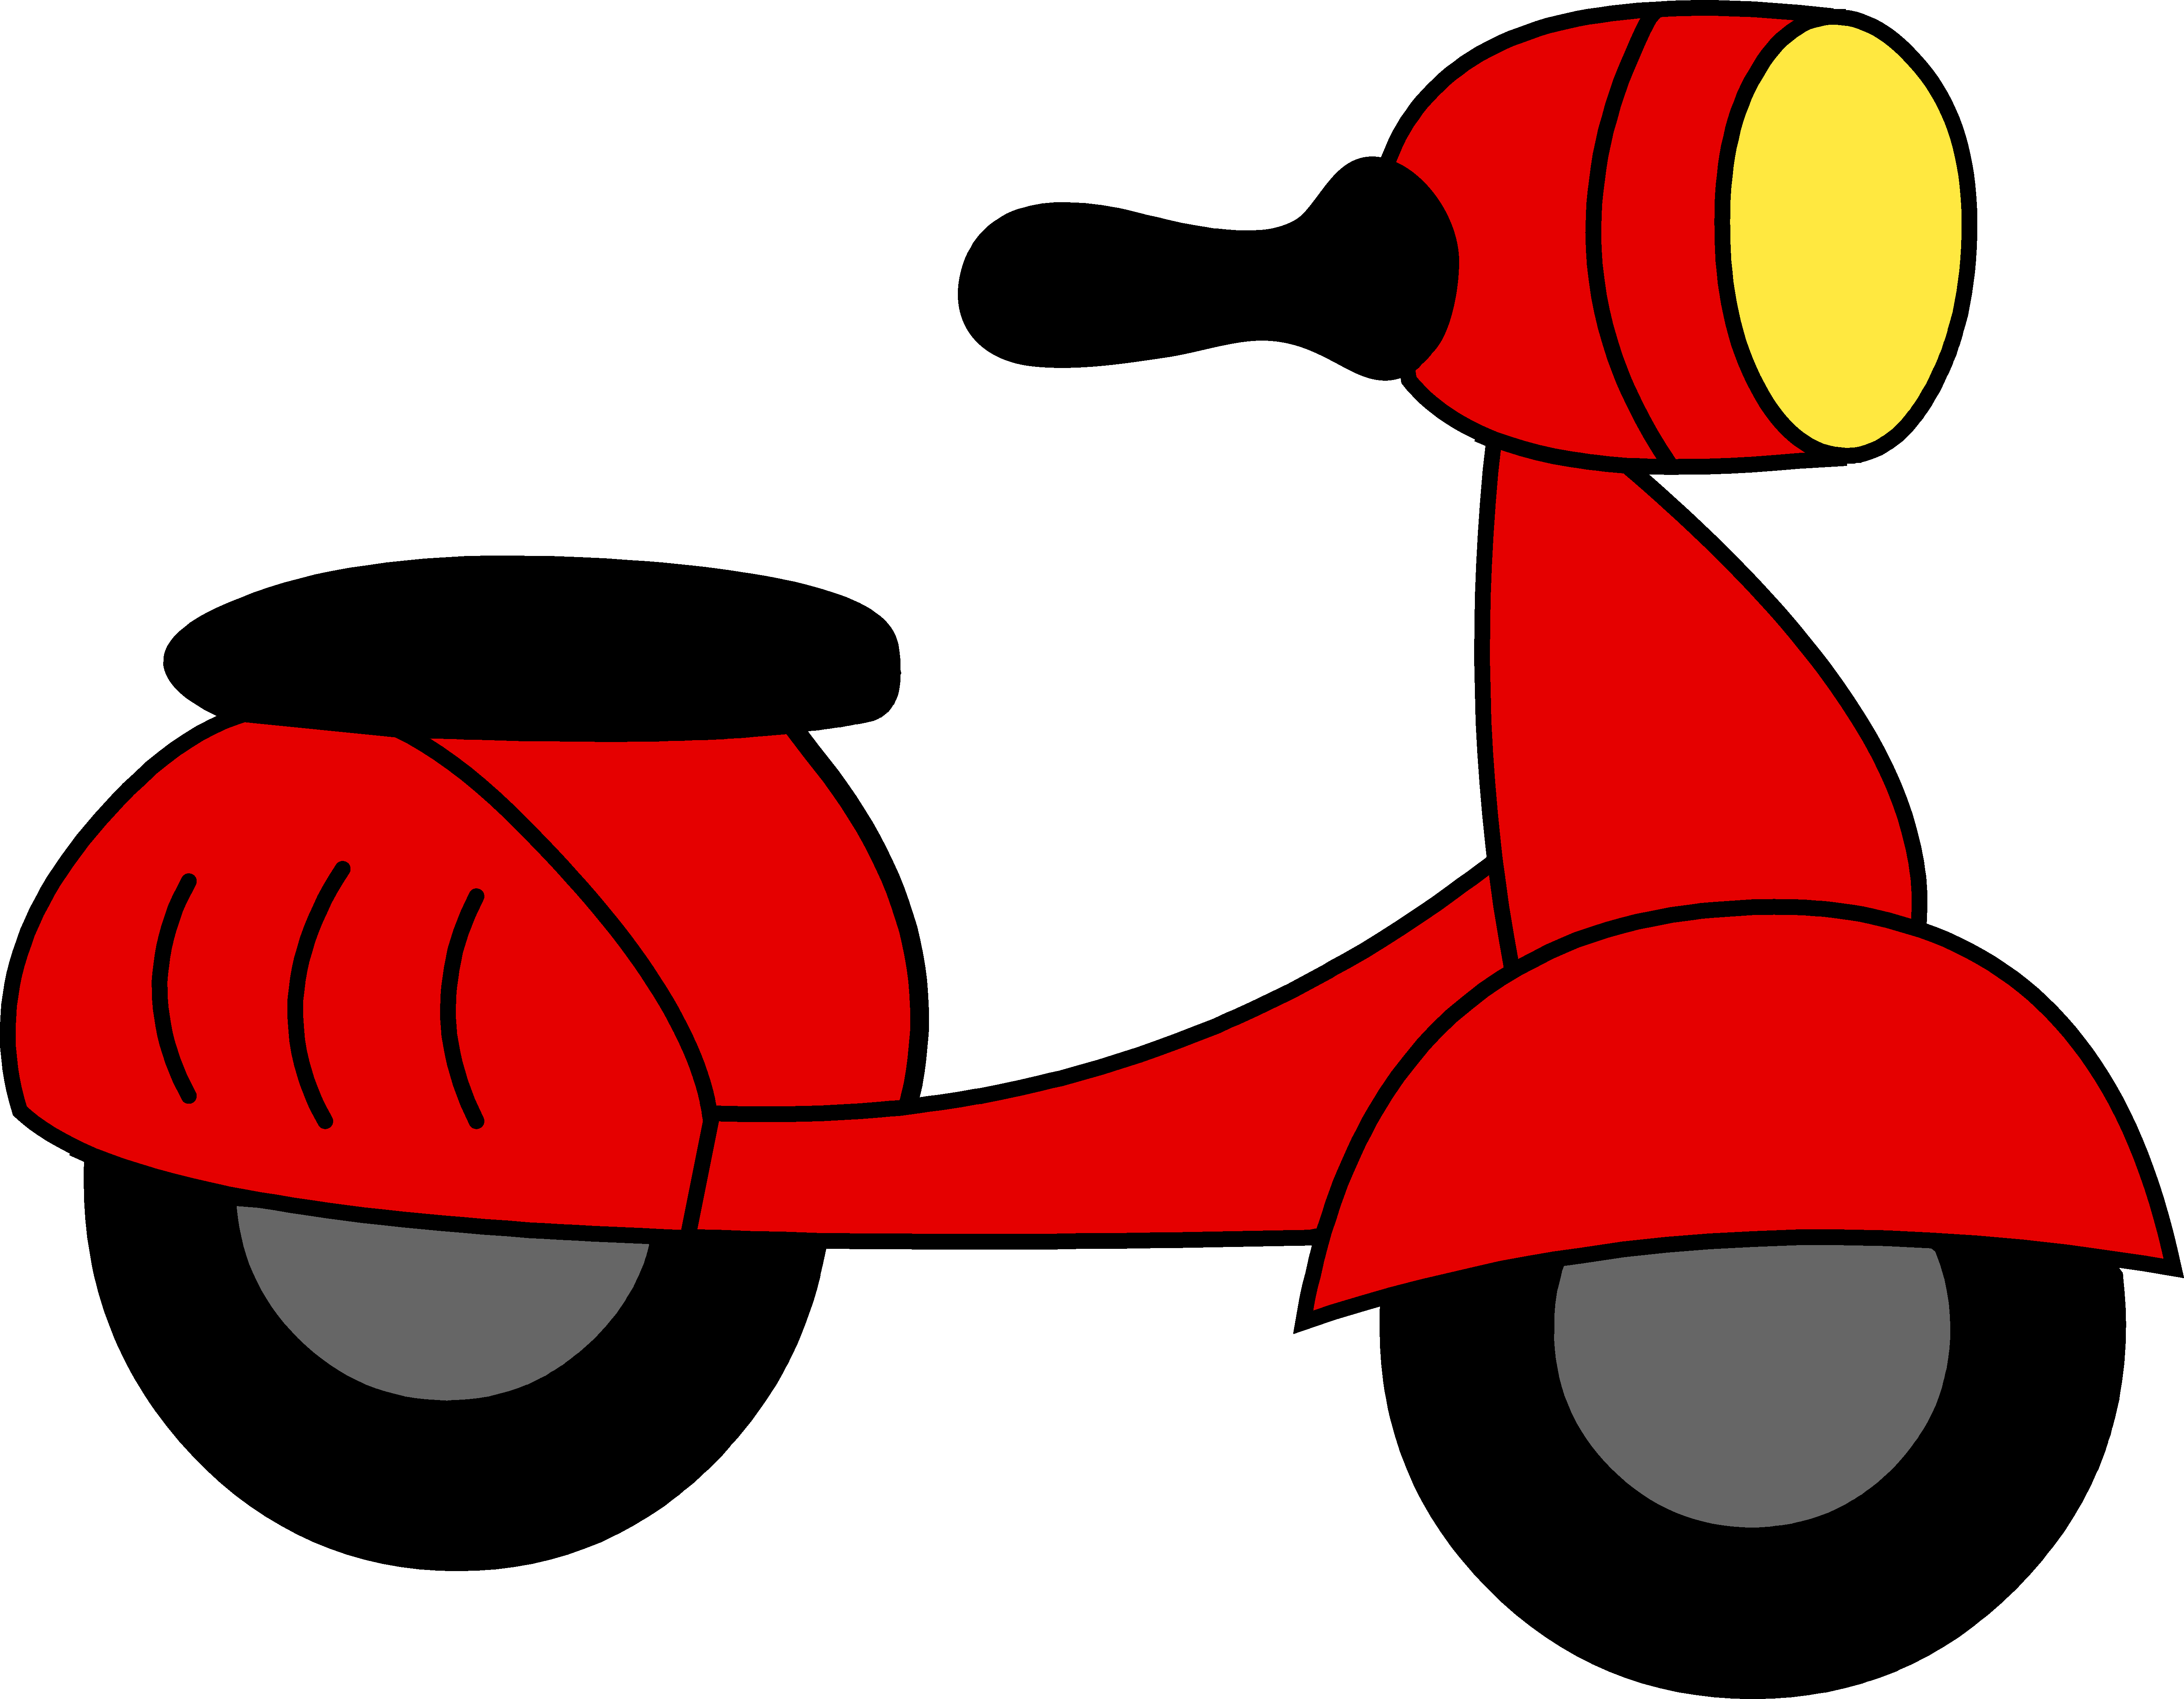 Animation svg scooter. Graphic transparent stock